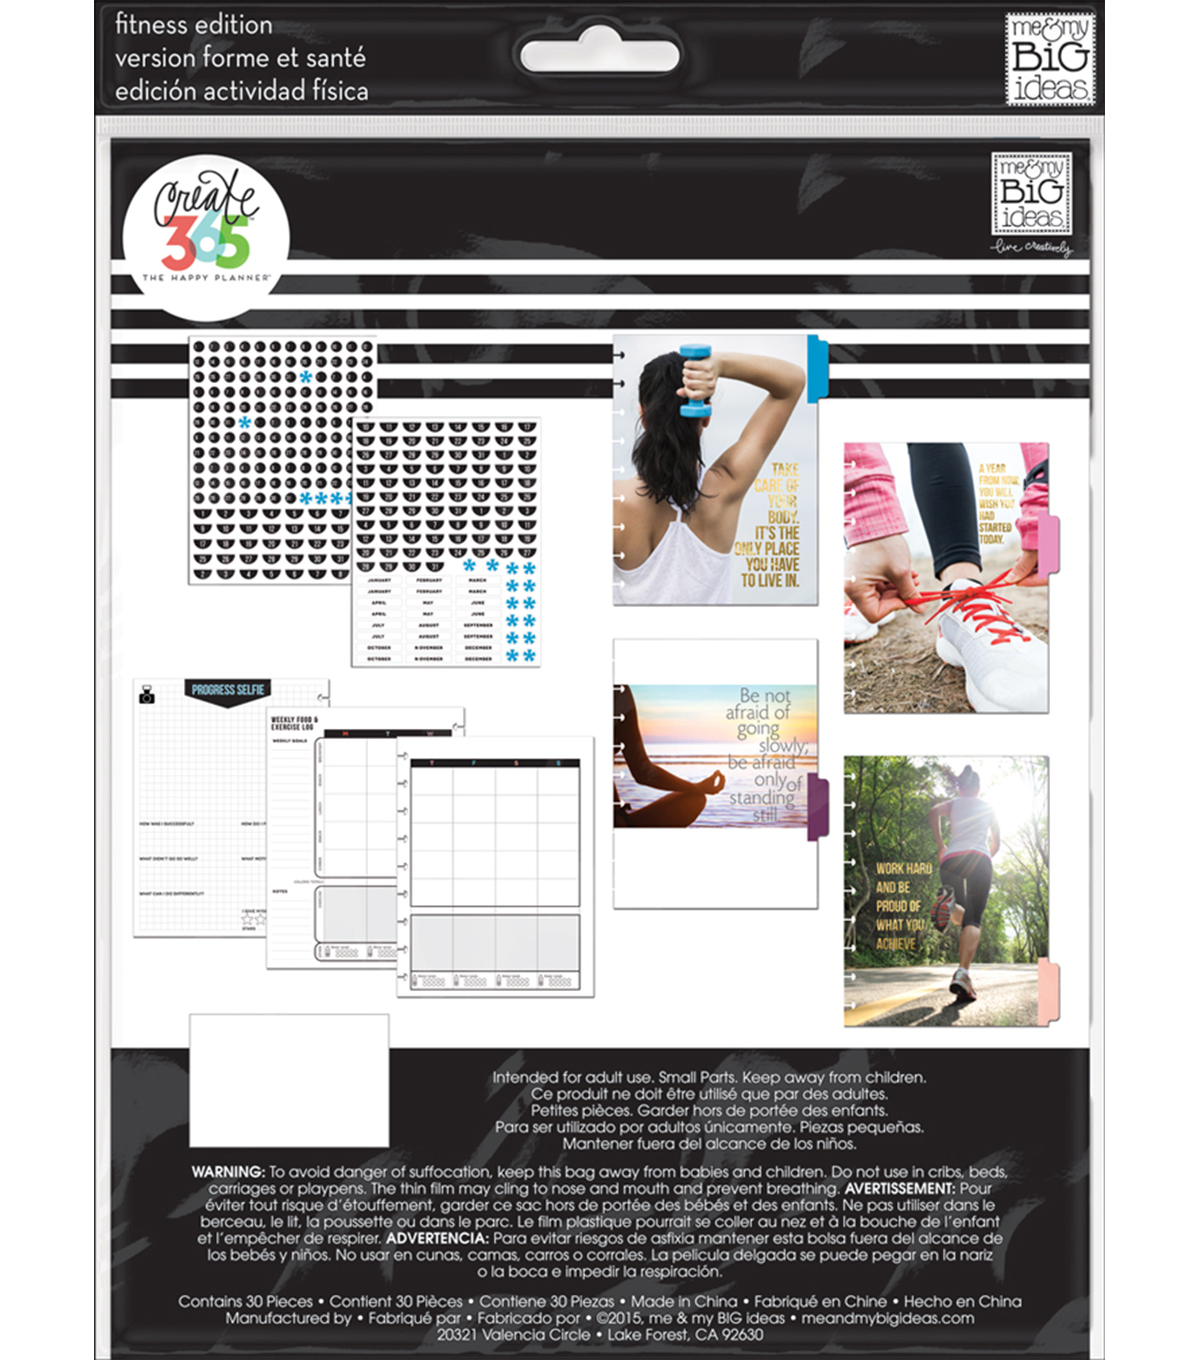 The Happy Planner Fitness Edition Expansion Pack